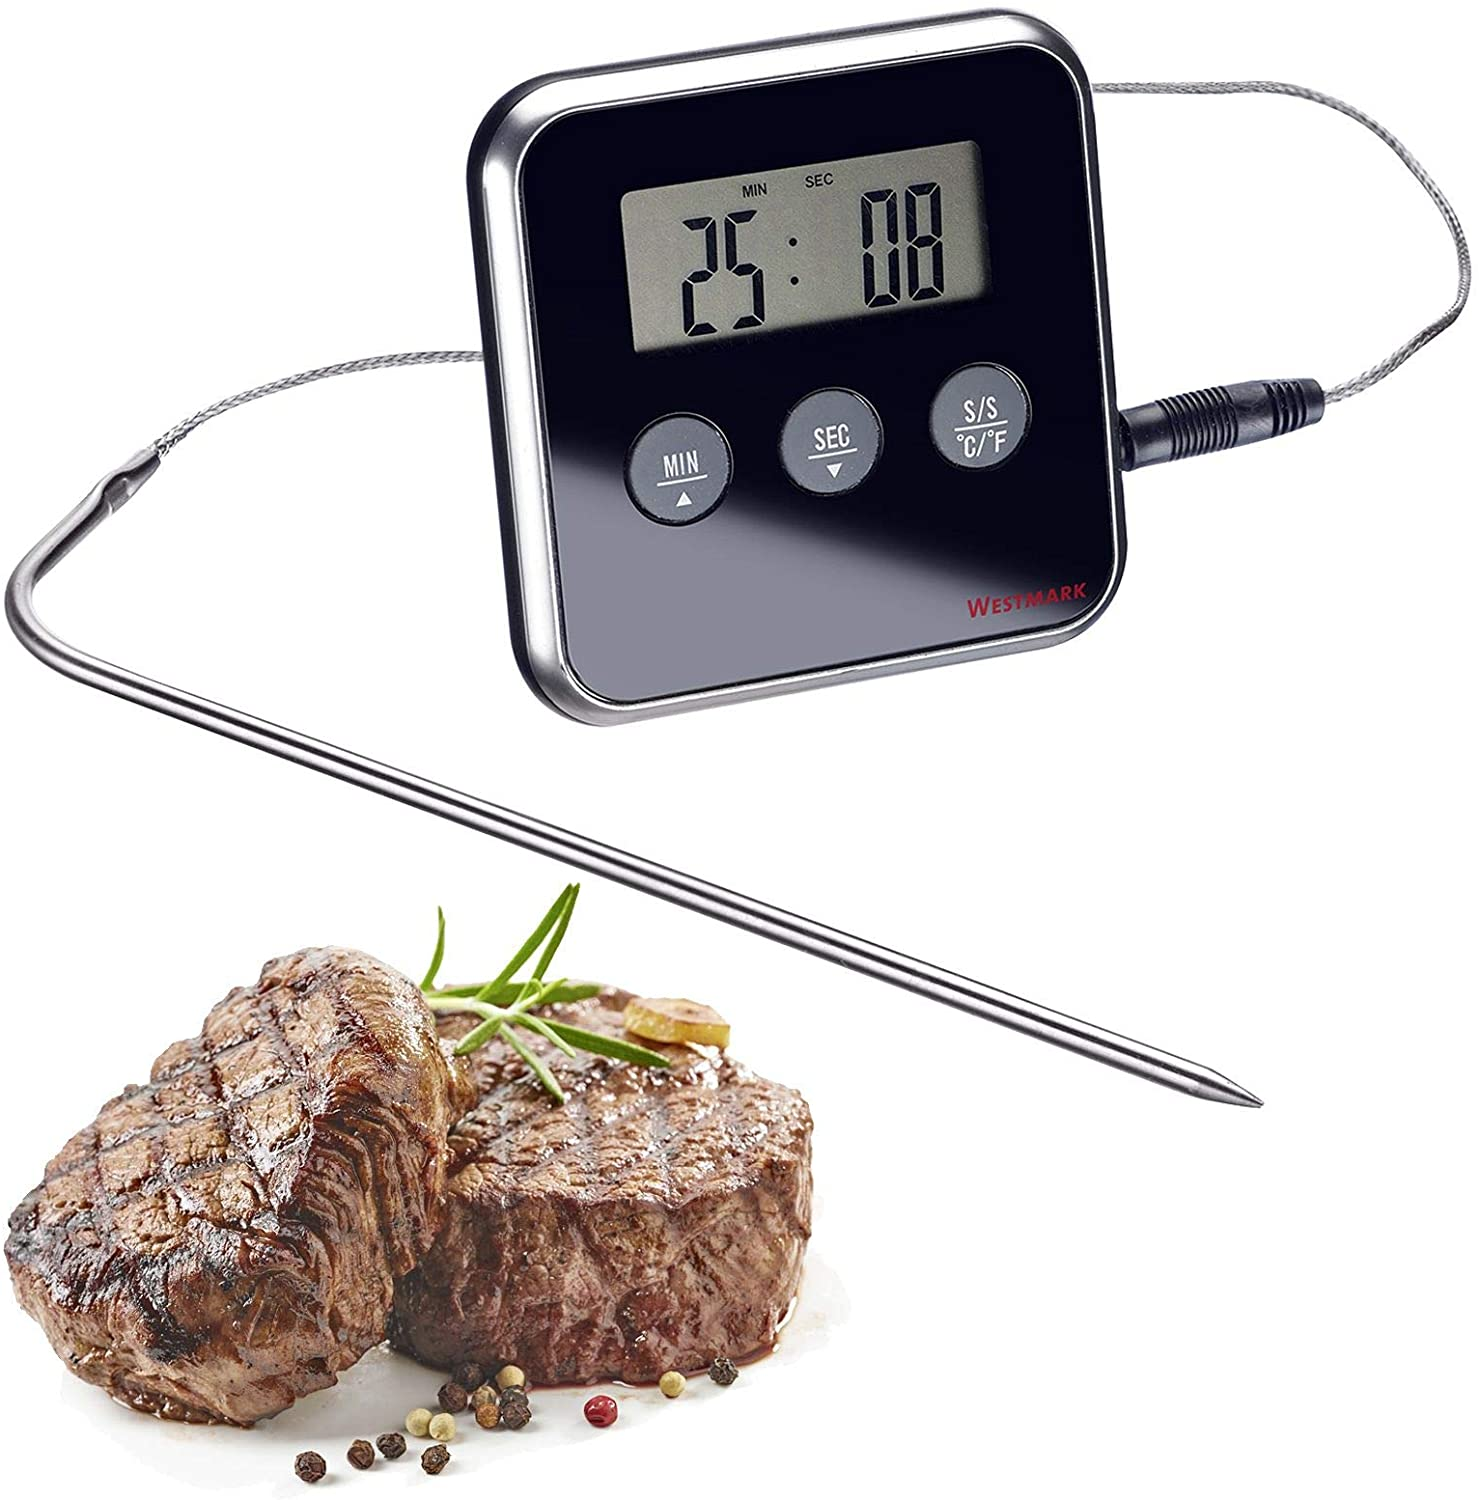 Westmark Digital Cooking Thermometer